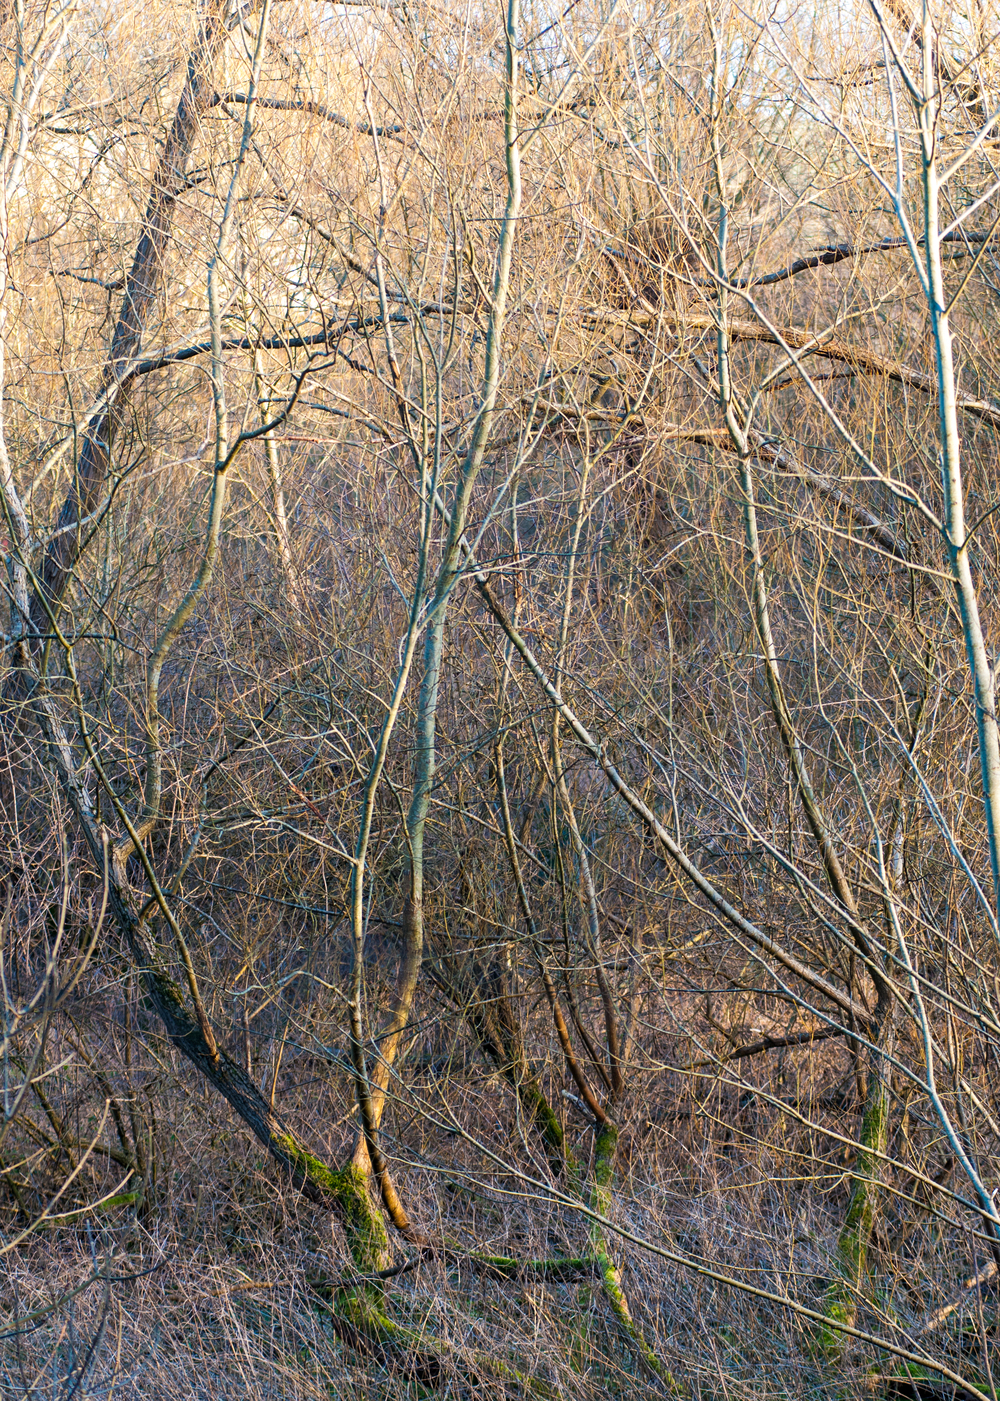 Tangled trees in a wood.jpg